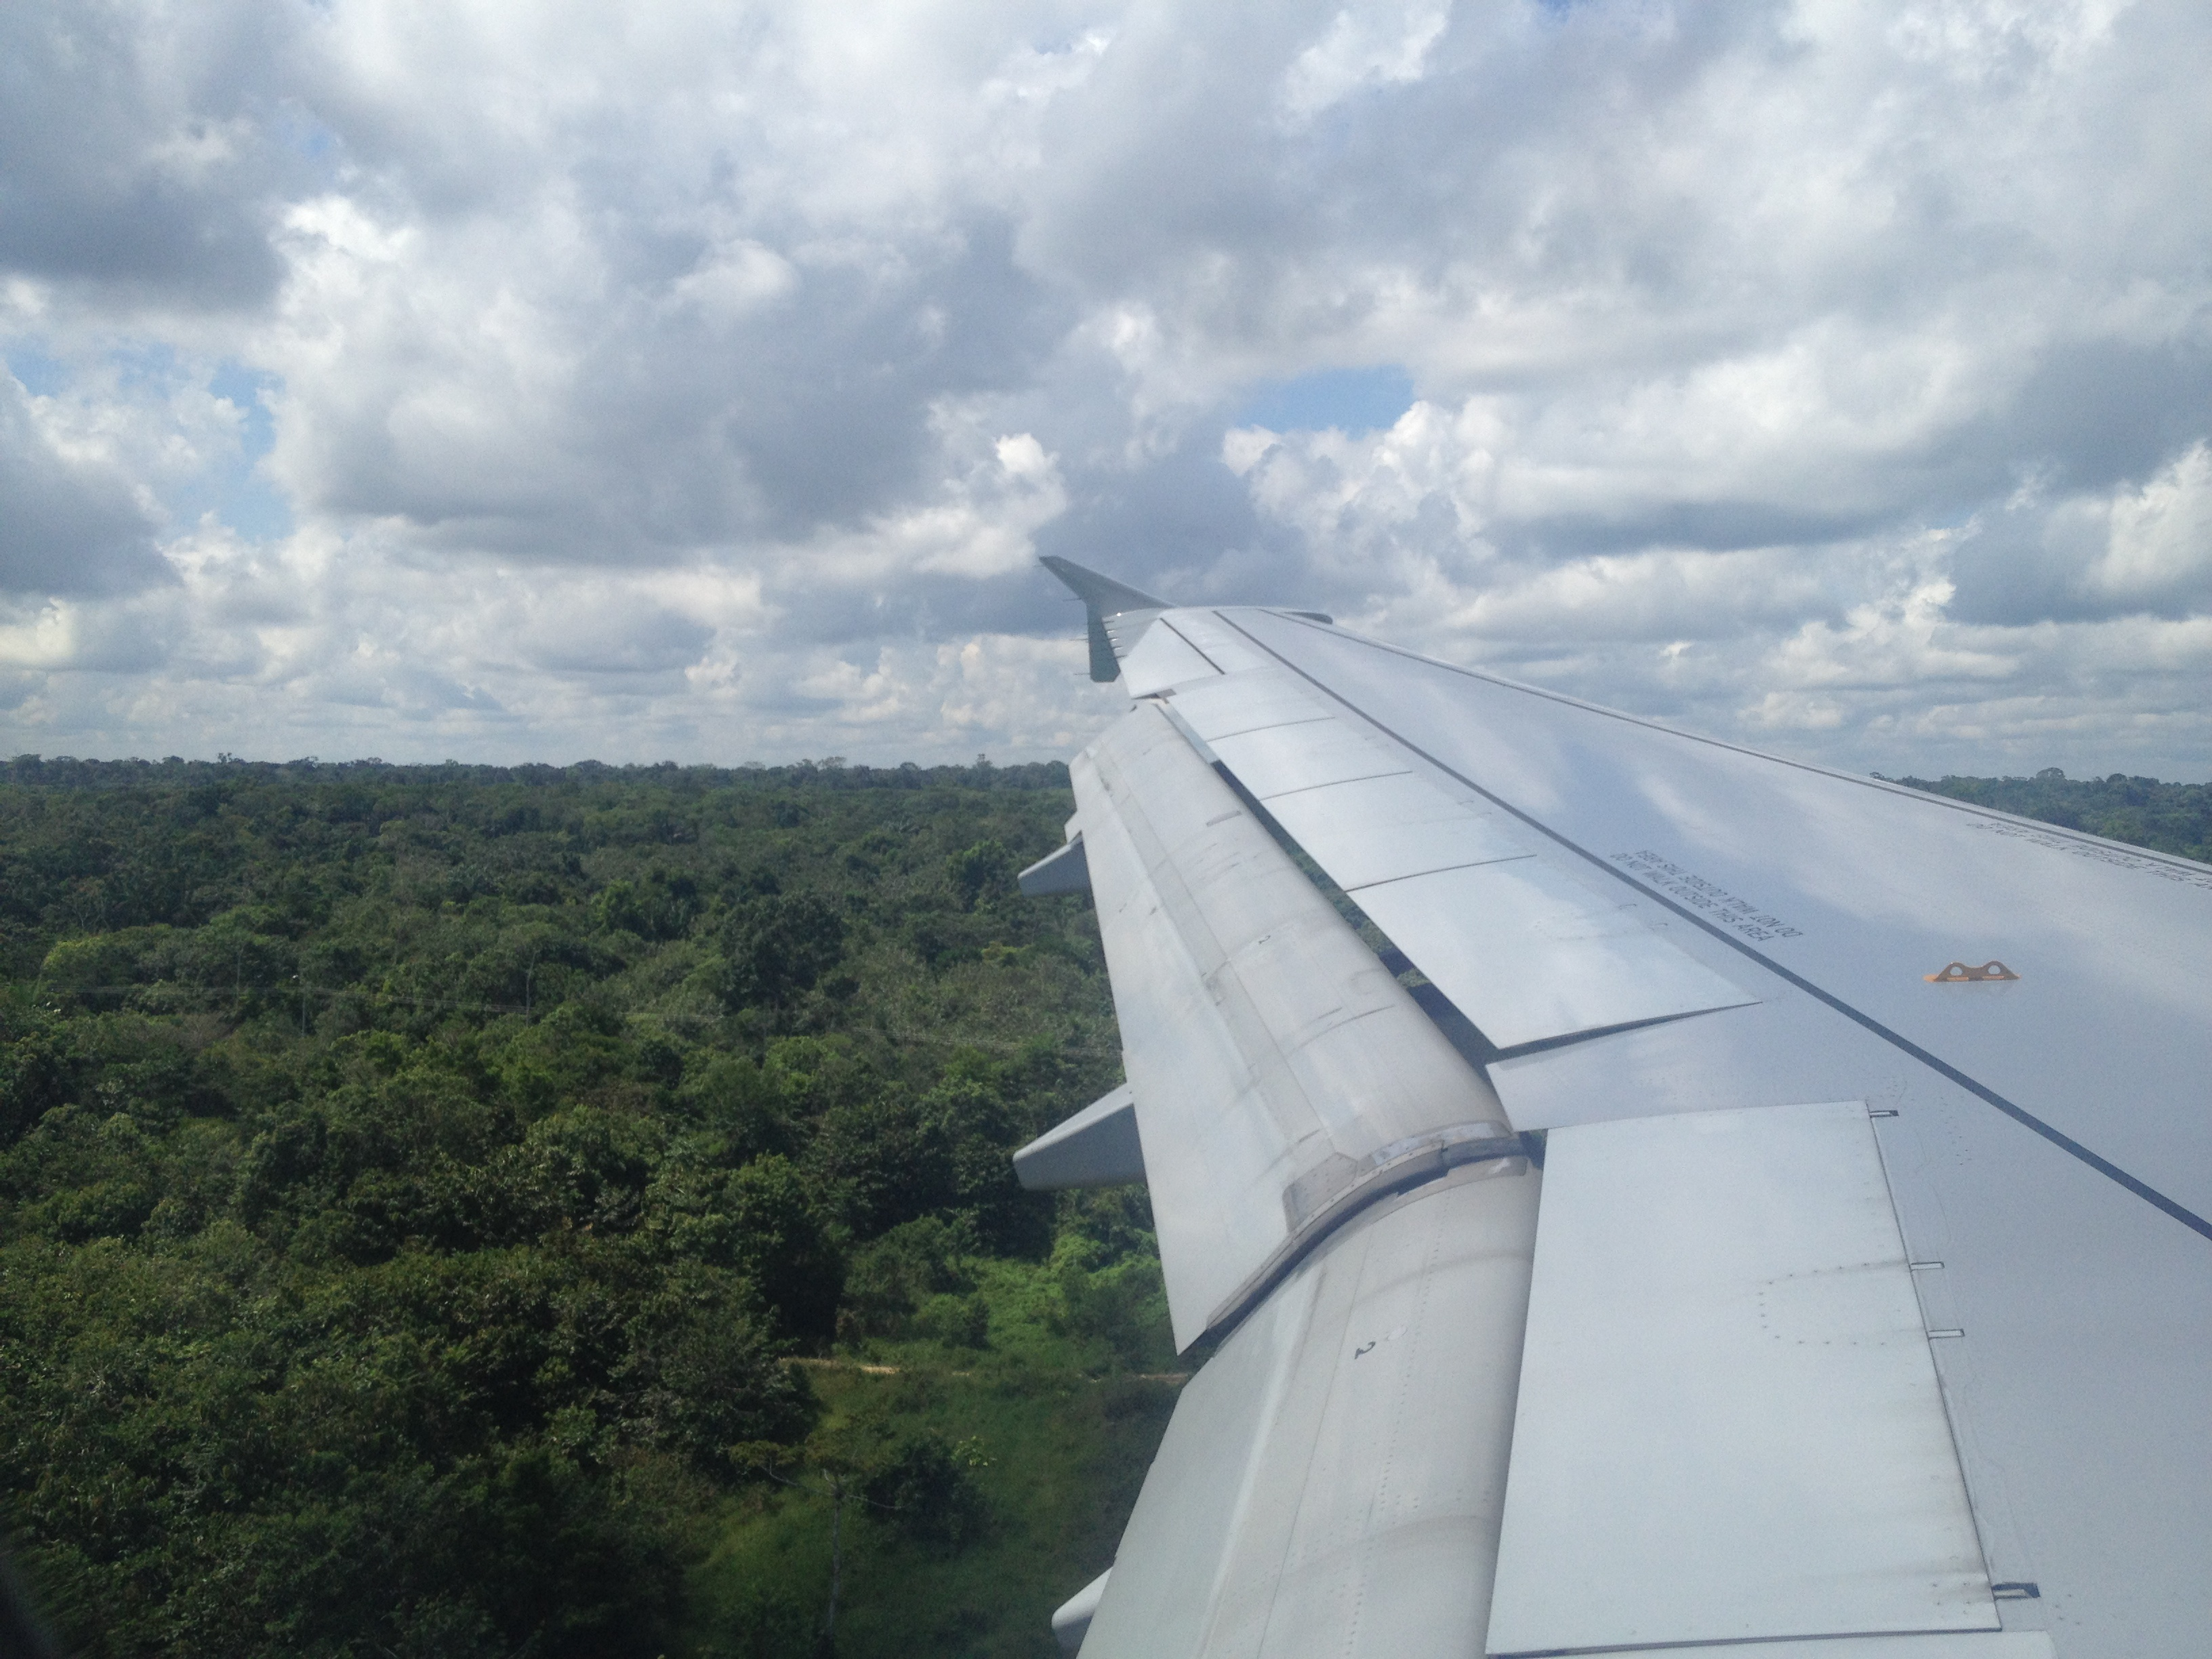 First sight of the amazon